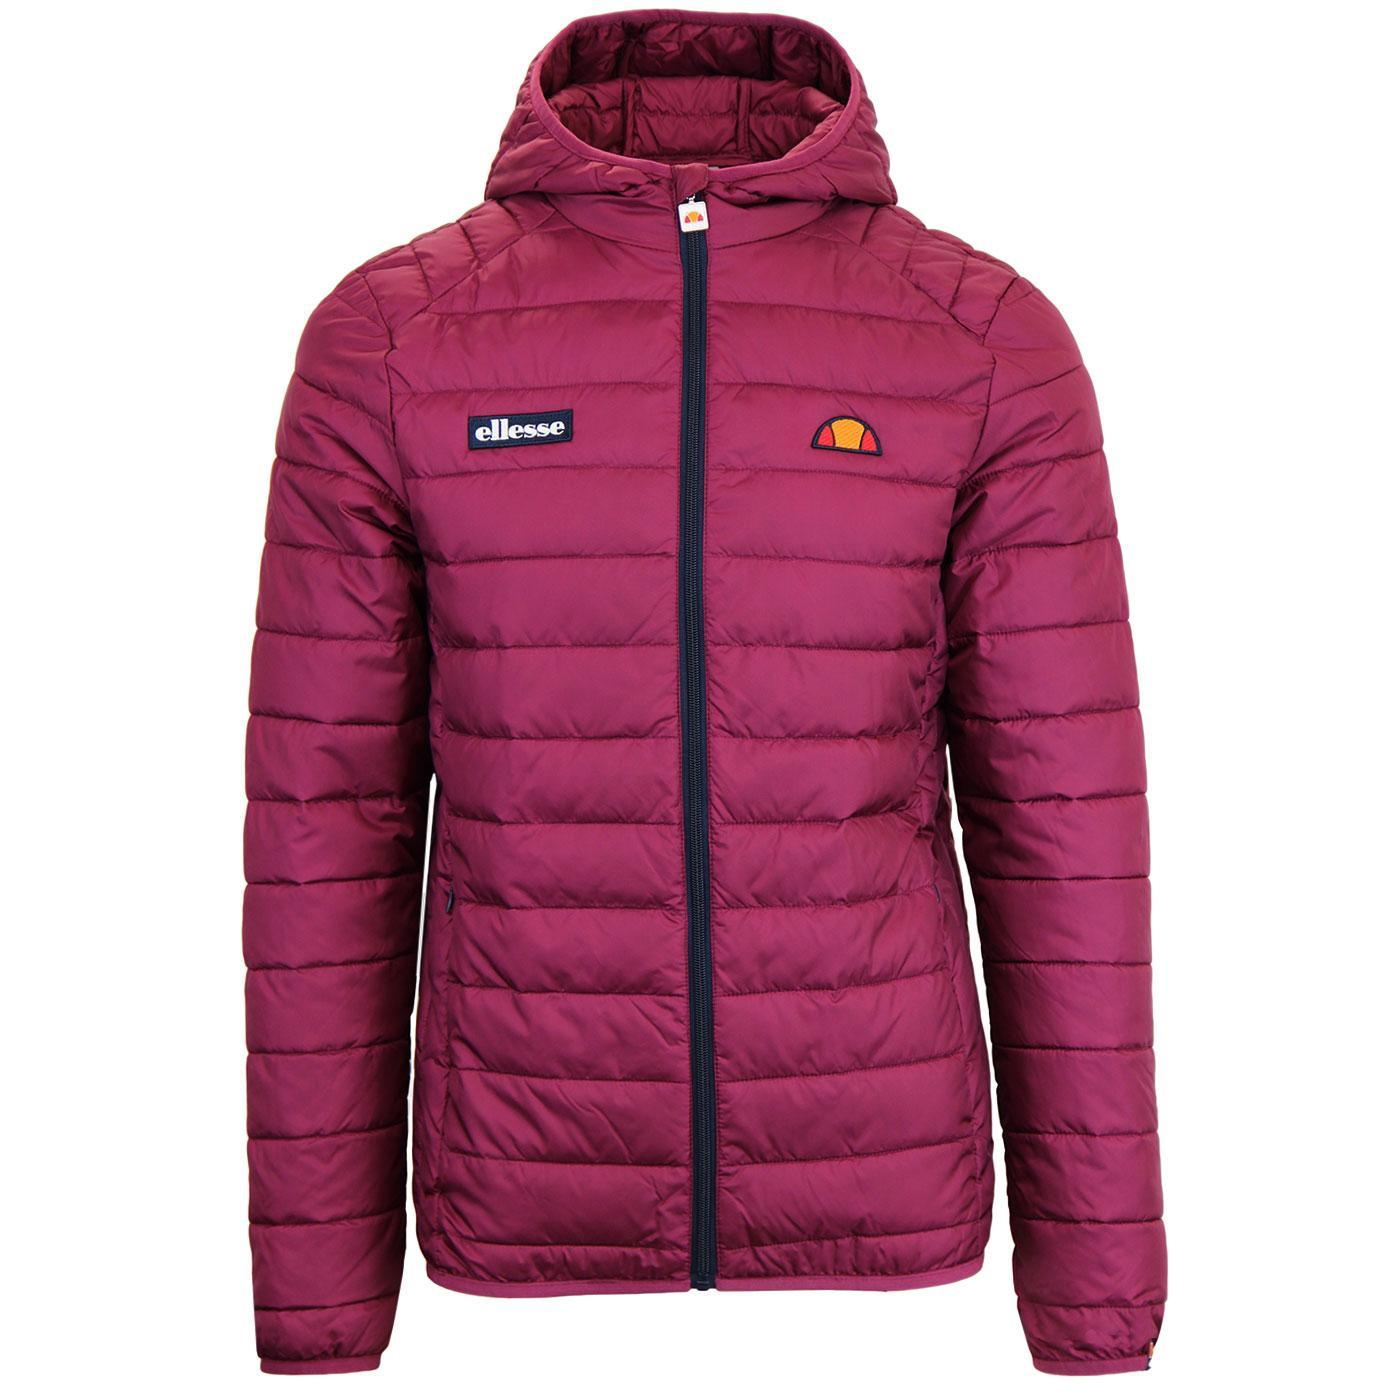 Lombardy ELLESSE Retro Mens Quilted Ski Jacket (P)